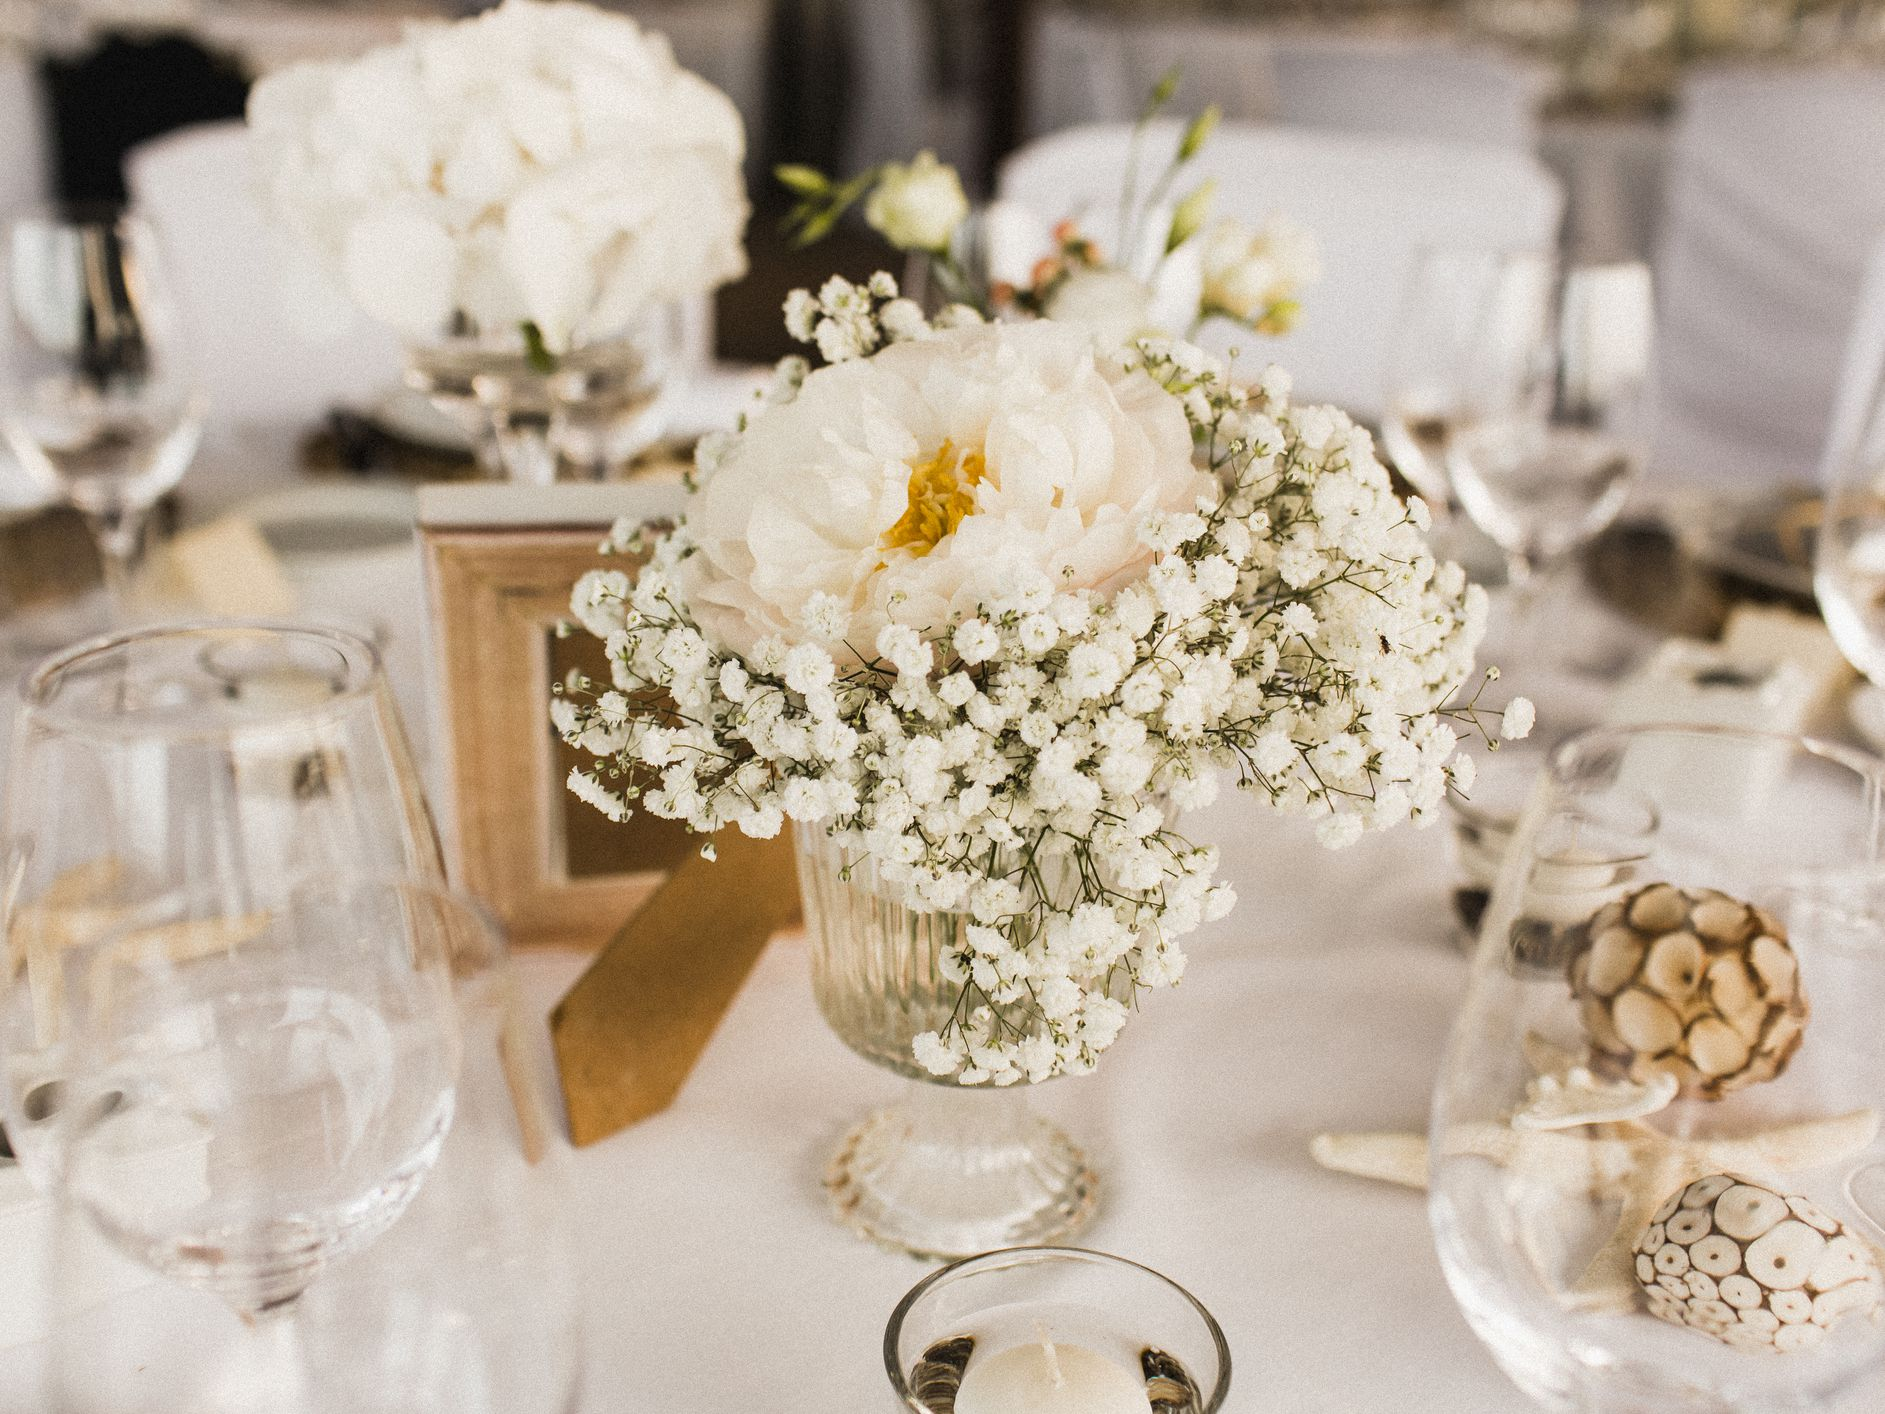 Wedding Centerpieces For Every Kind Of Table